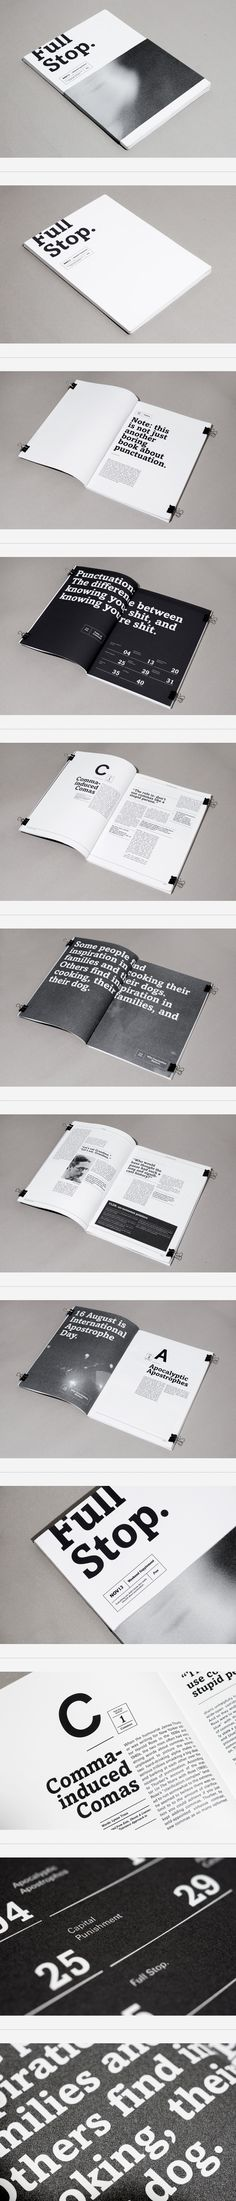 Layout design / Editorial / Full Stop Graphic Design Studio, Graphisches Design, Buch Design, Cover Design, Graphic Design Layouts, Layout Design, Interior Design, Editorial Design Layouts, Editorial Design Inspiration